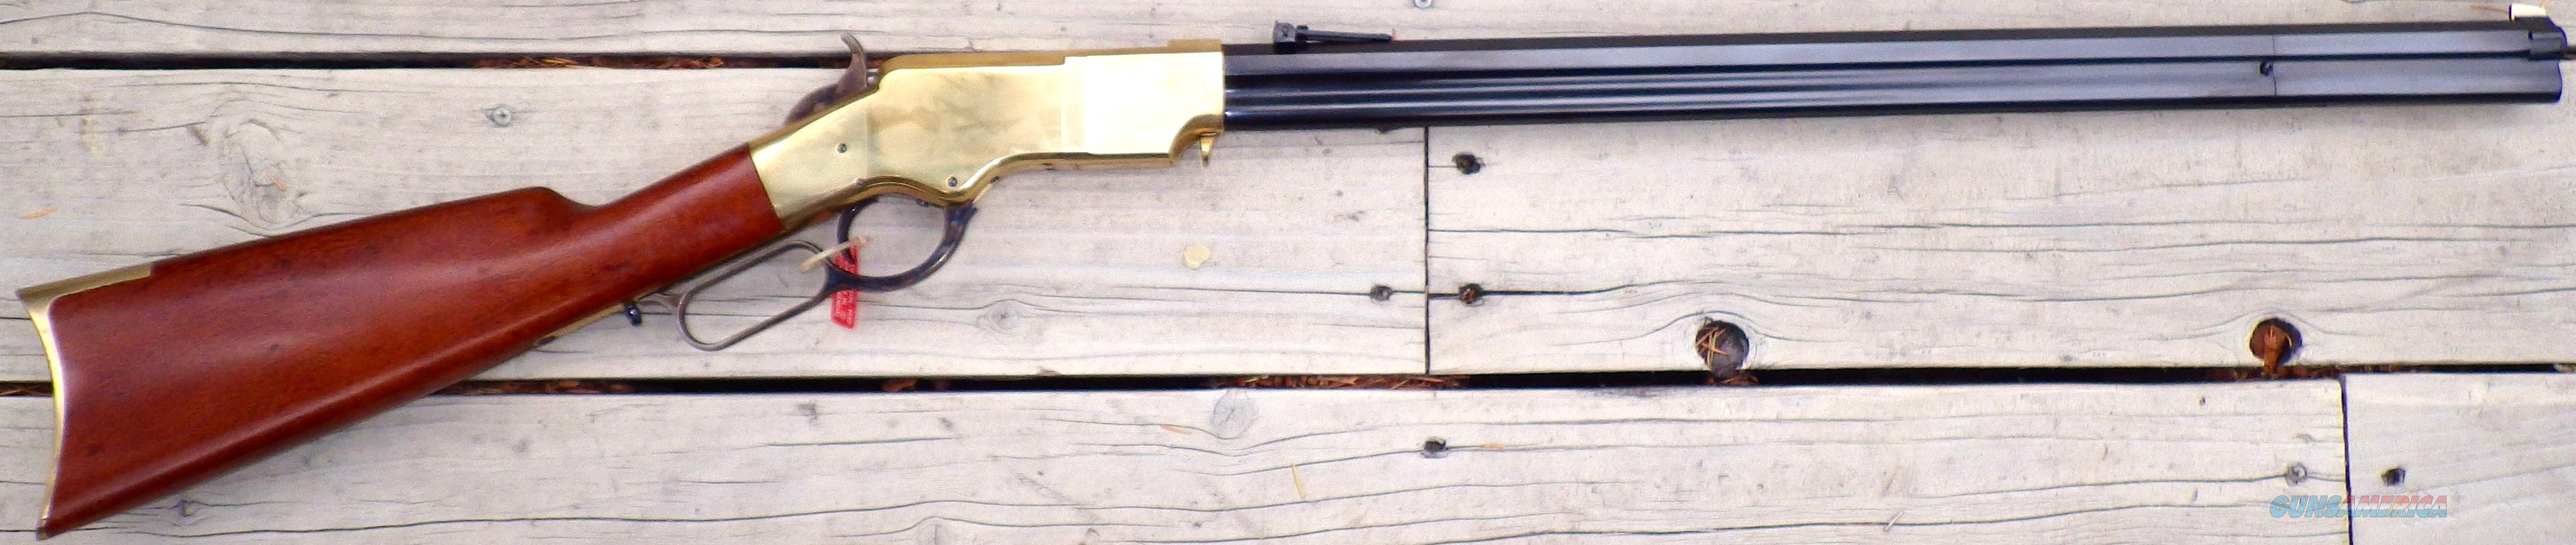 Navy Arms Henry .44-40, brass frame, 24-inch, swivels, new, adjustable  Guns > Rifles > Navy Arms Rifles